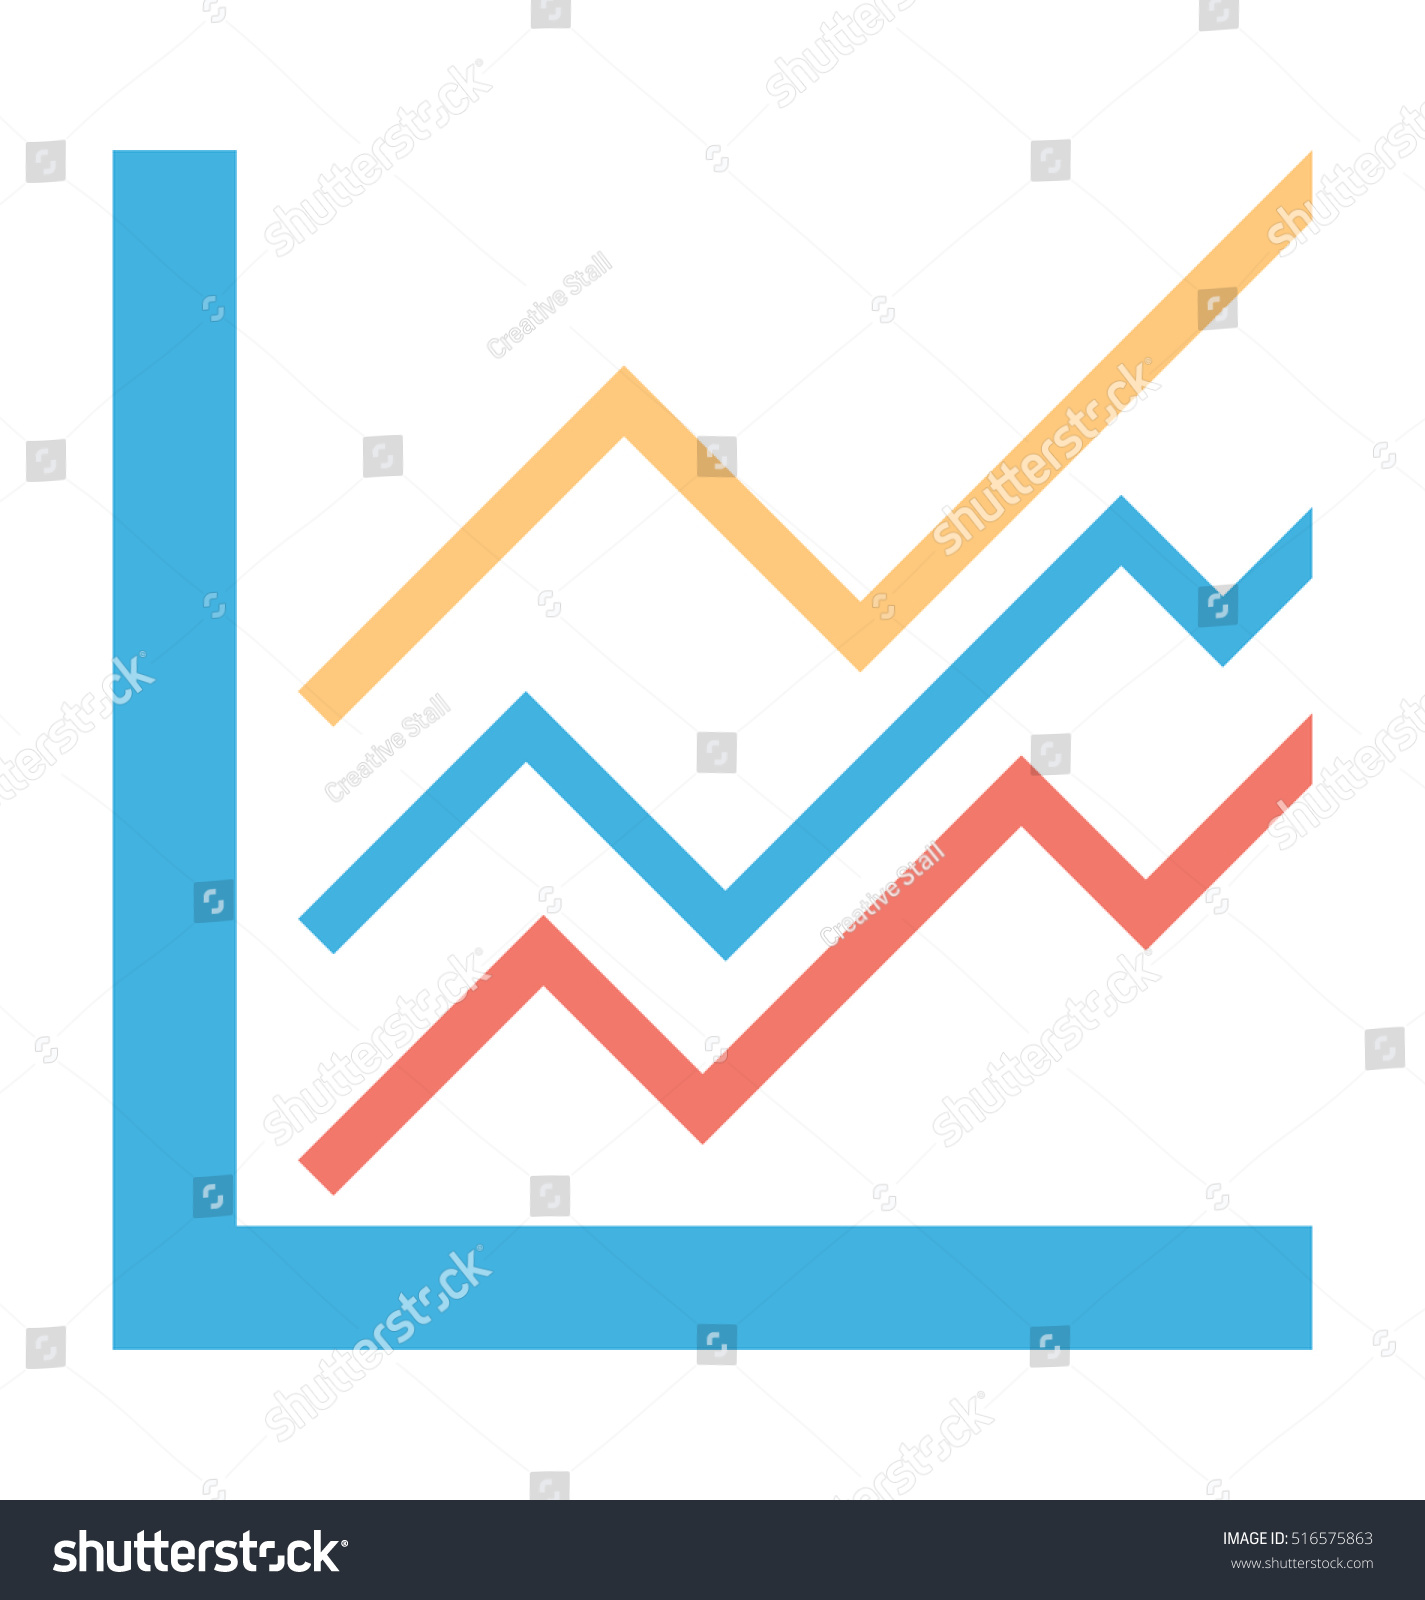 line graph vector icon stock vector (royalty free) 516575863